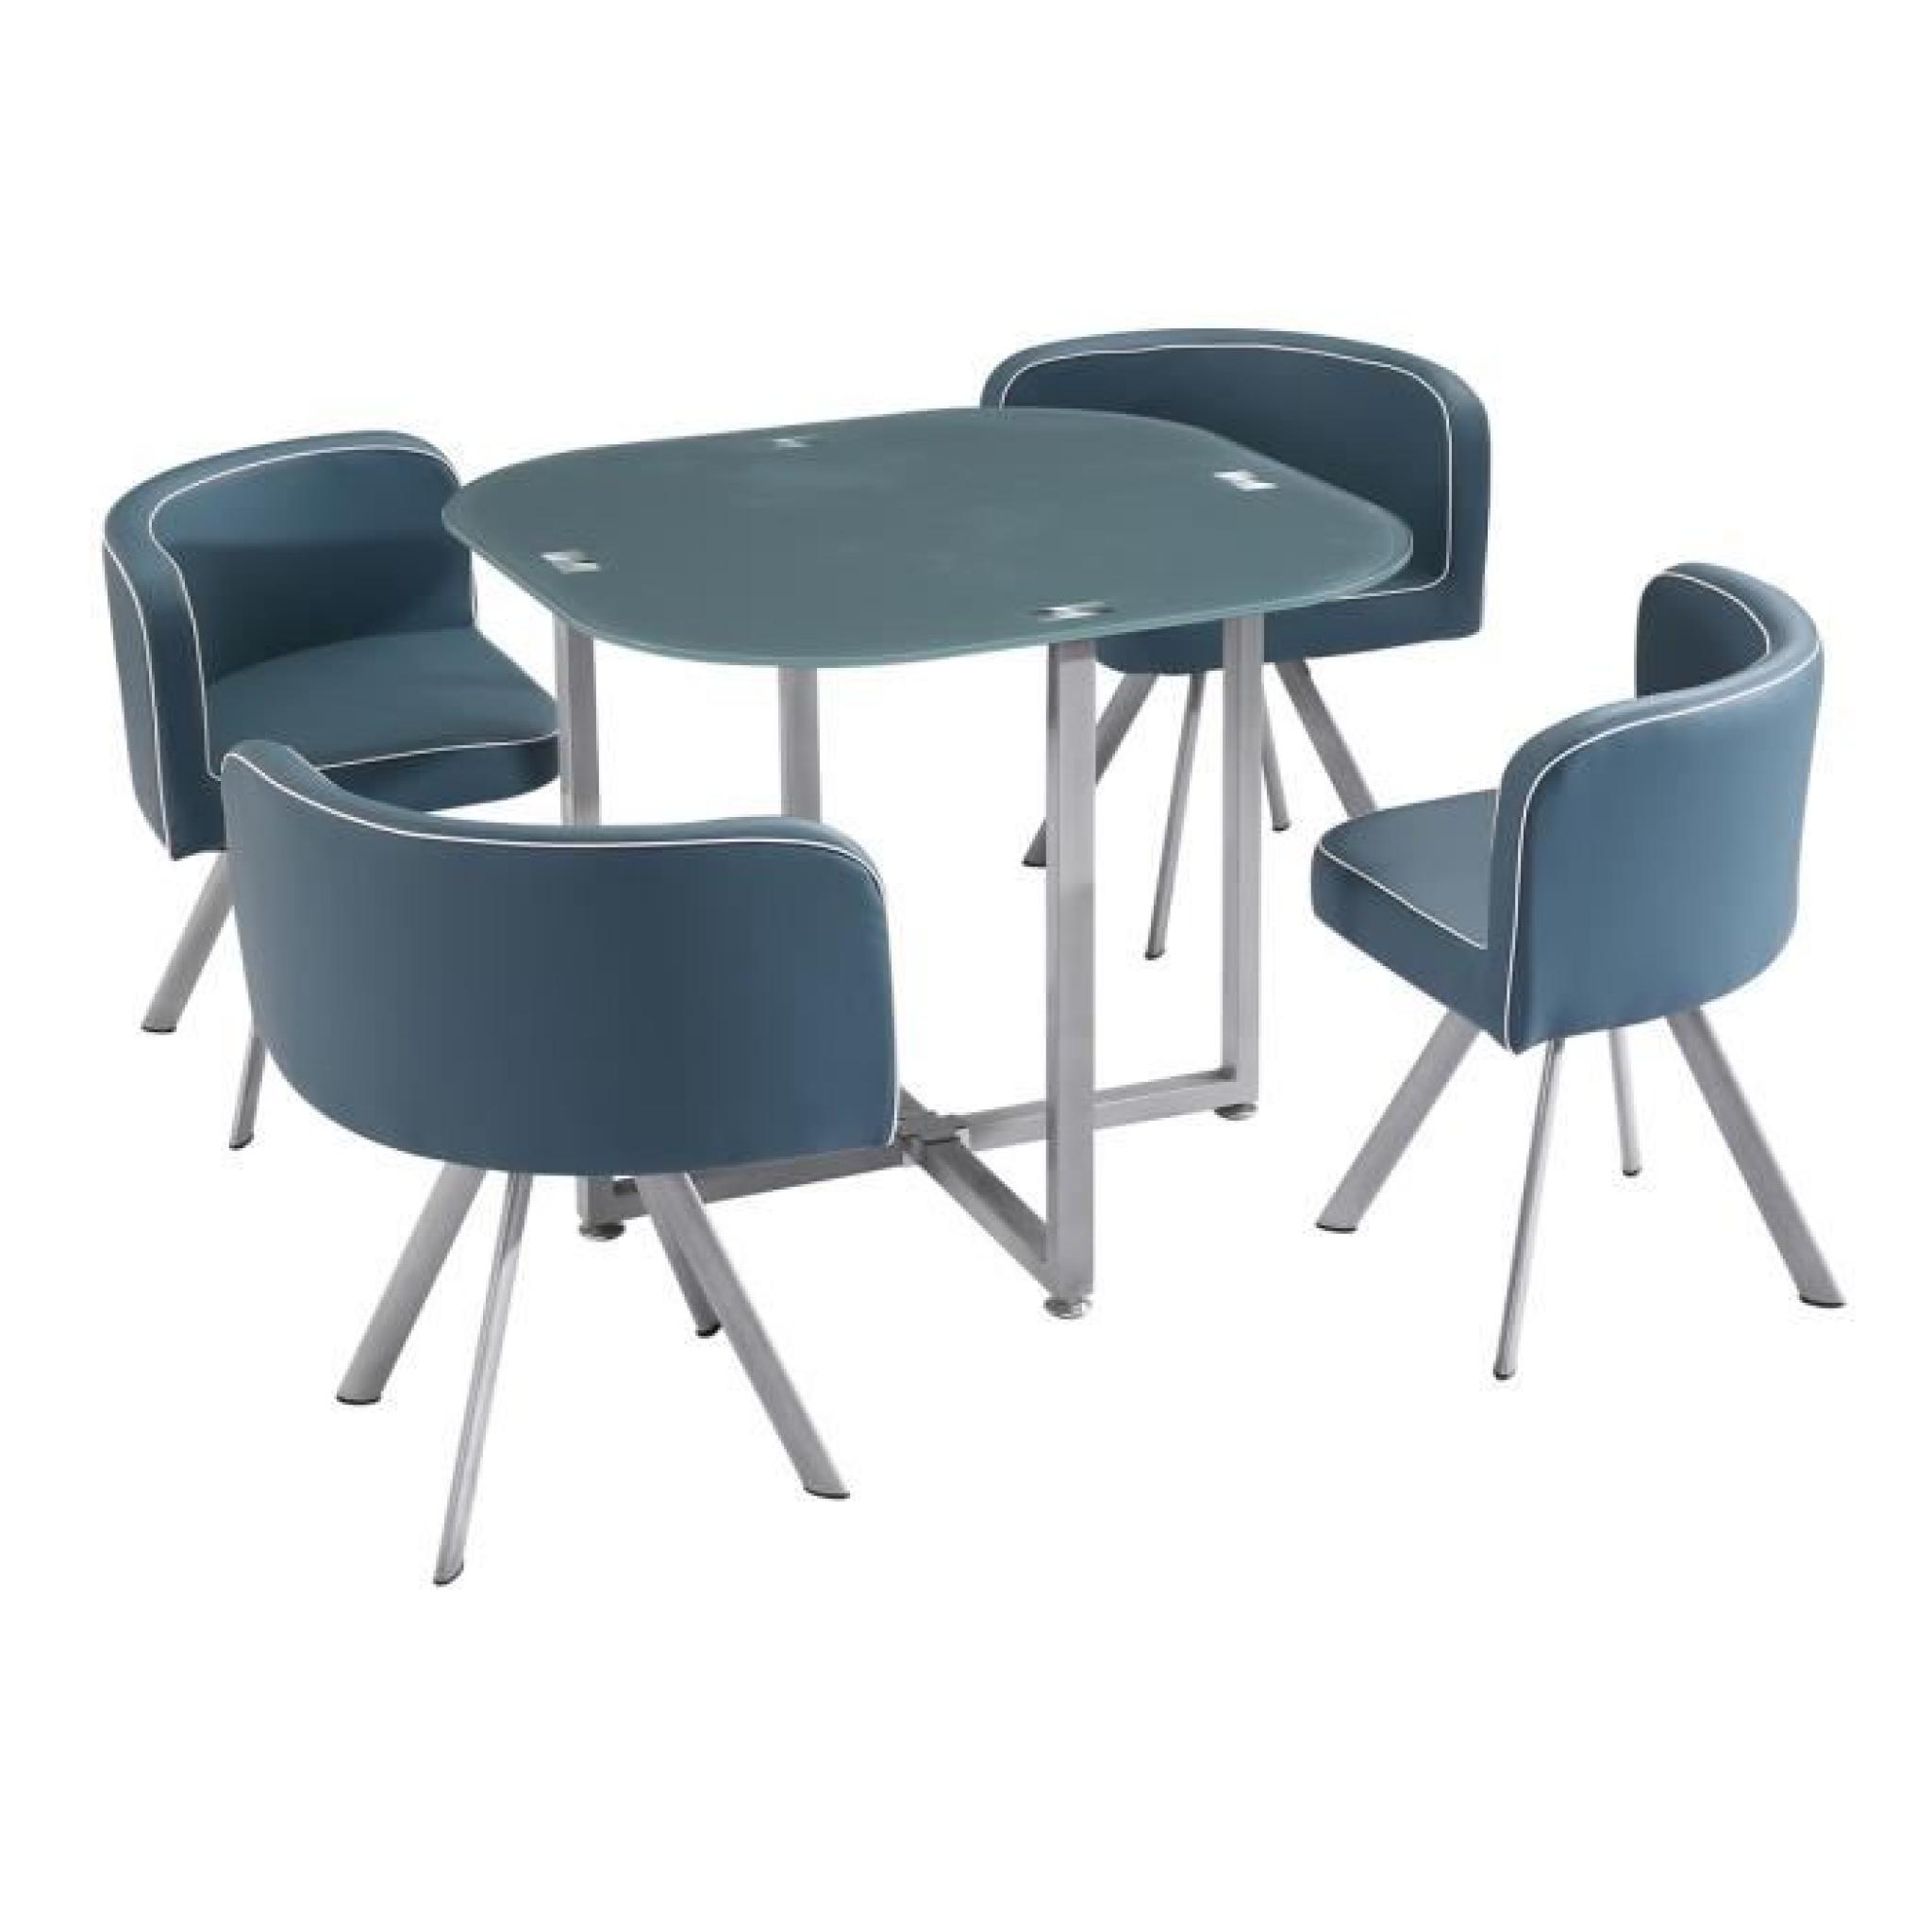 Ensemble table a manger et chaise pas cher maison design - Table ronde et 4 chaises ...